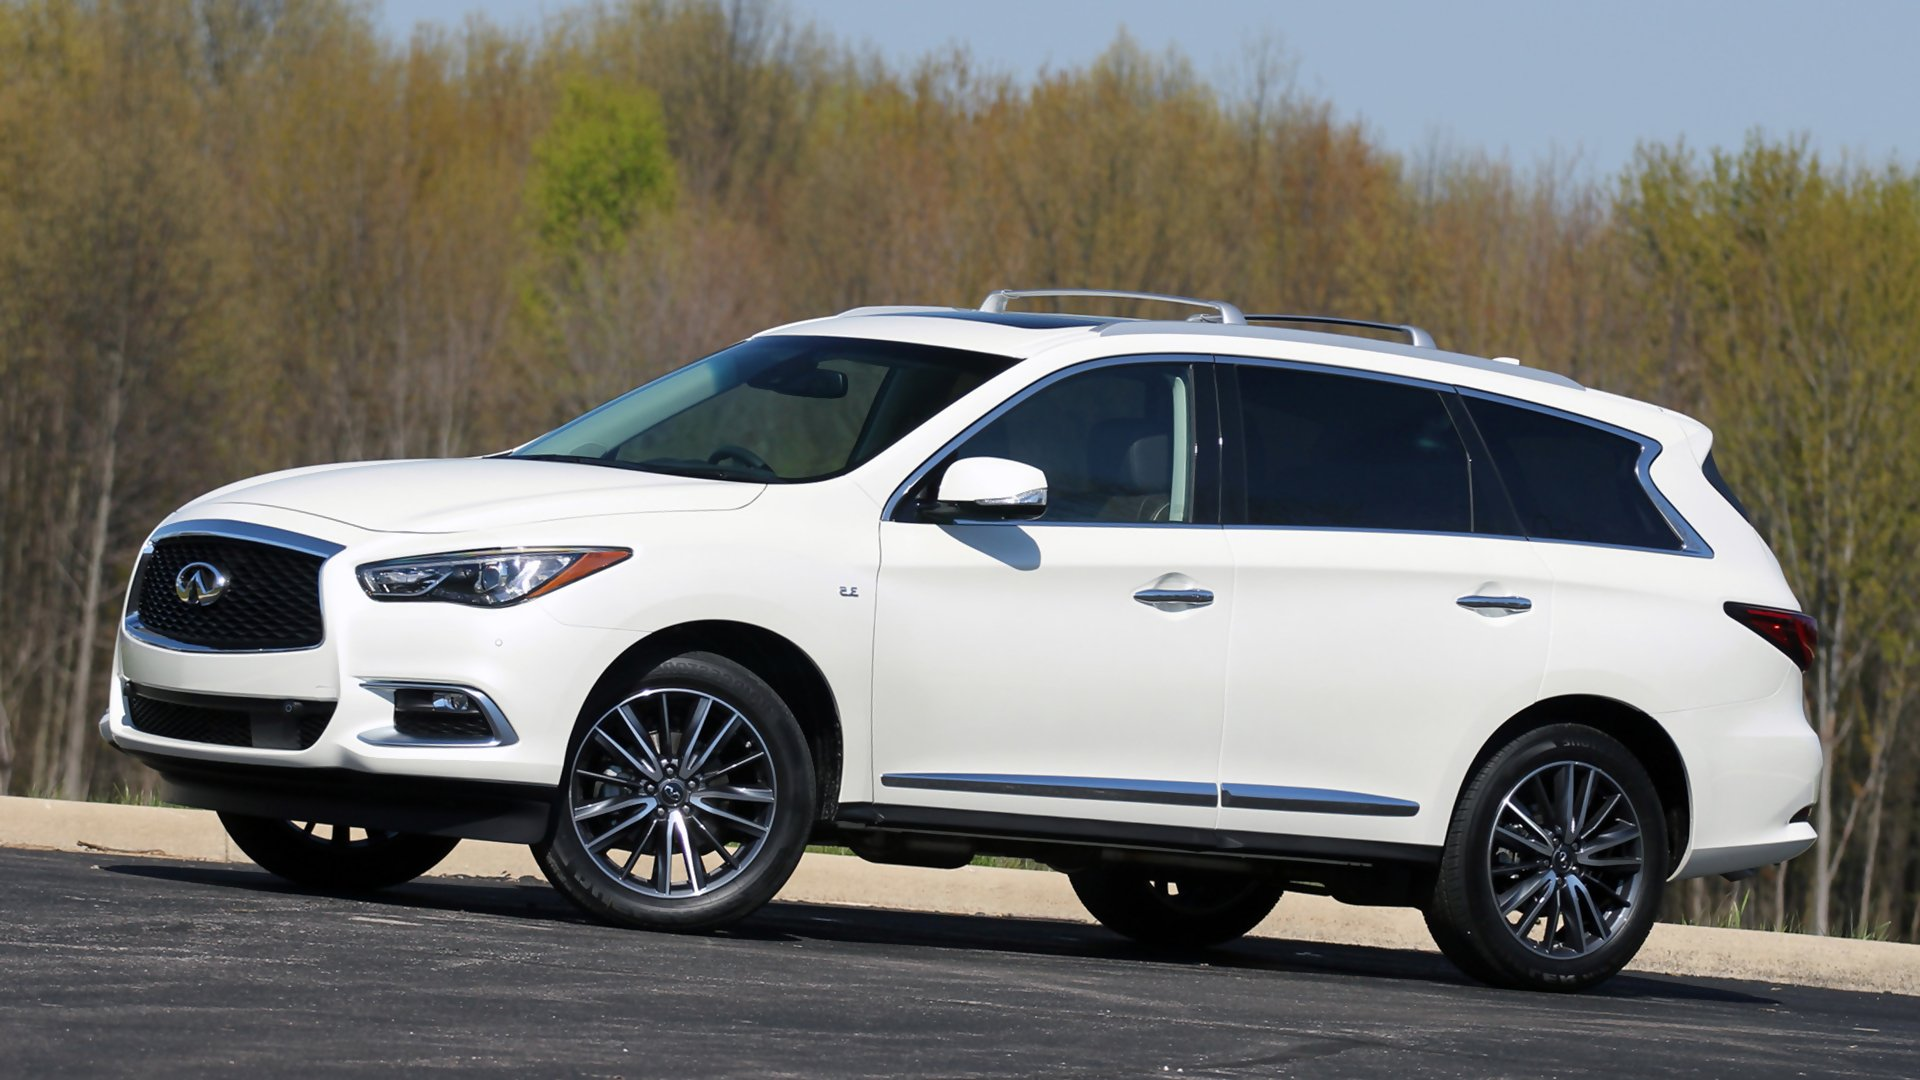 New 2019 Infiniti QX60 Redesign